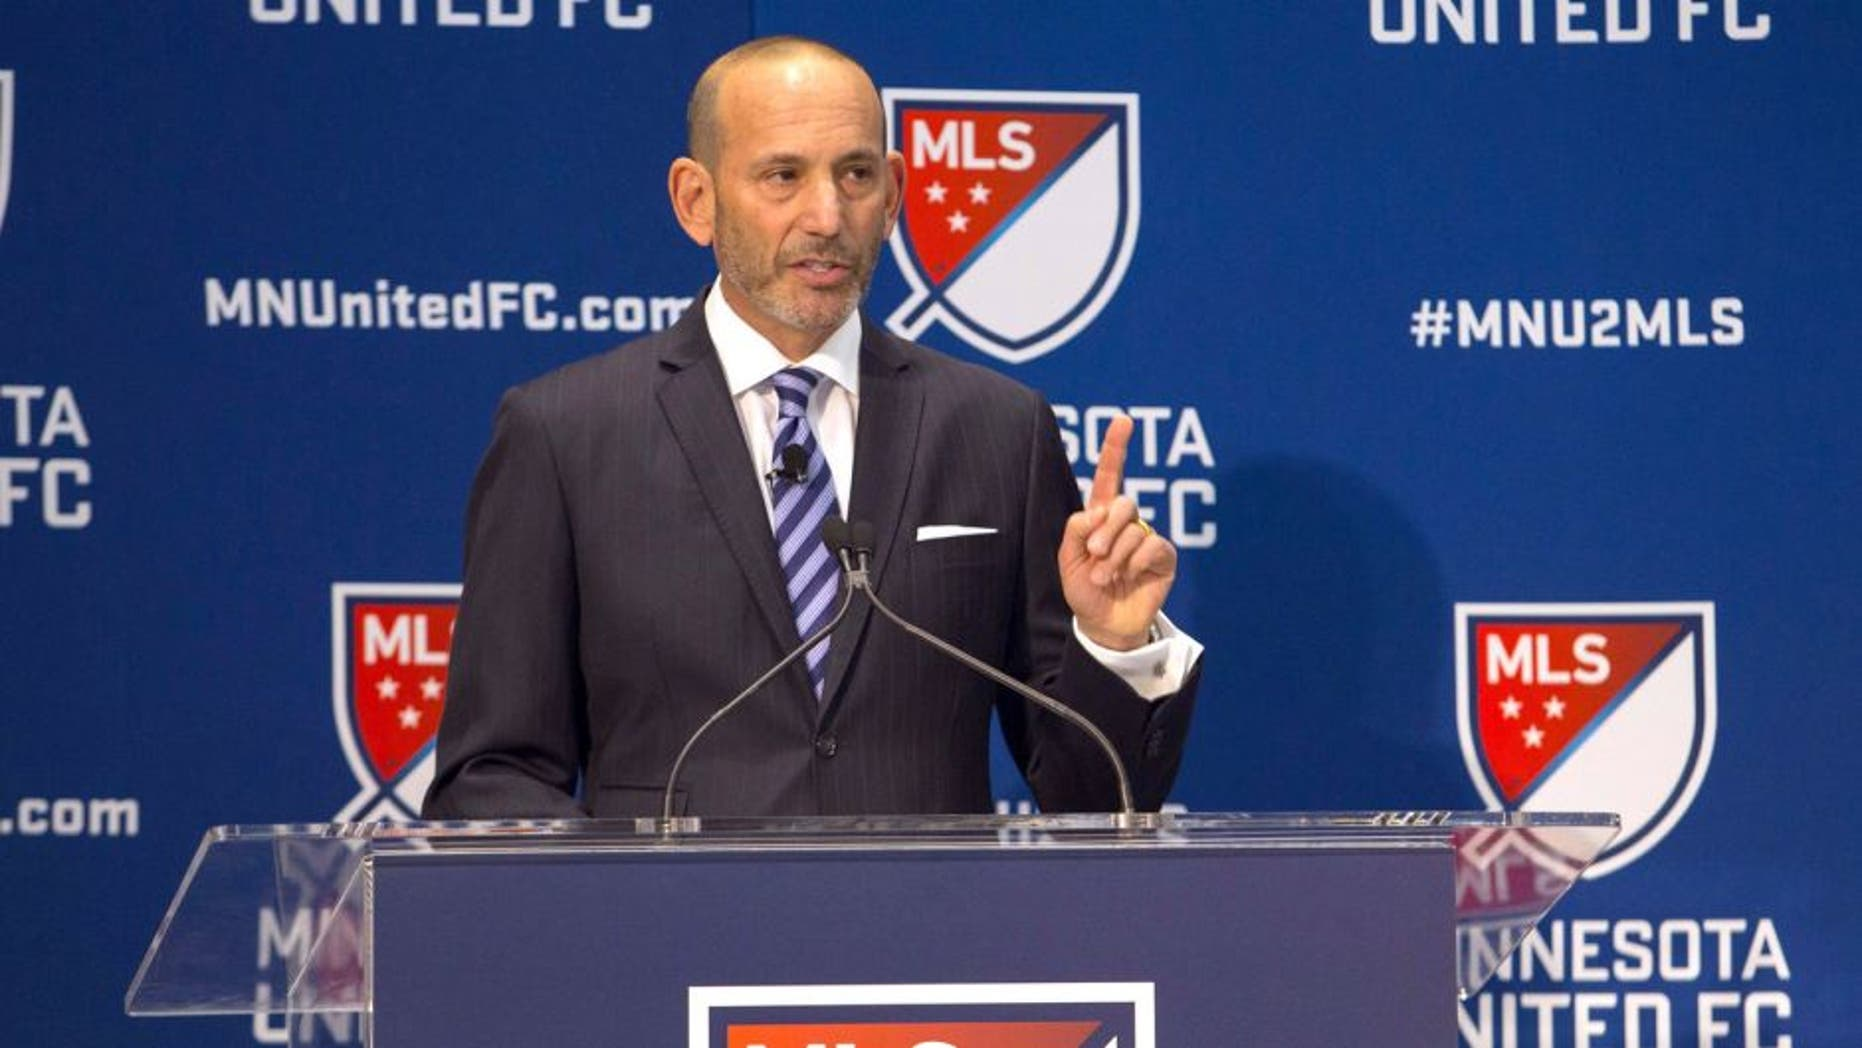 Mar 25, 2015; Minneapolis, MN, USA; MLS commissioner Don Garber announces that the Minnesota United FC soccer team will join the MLS at Target Field-Carew Atrium. Mandatory Credit: Brad Rempel-USA TODAY Sports